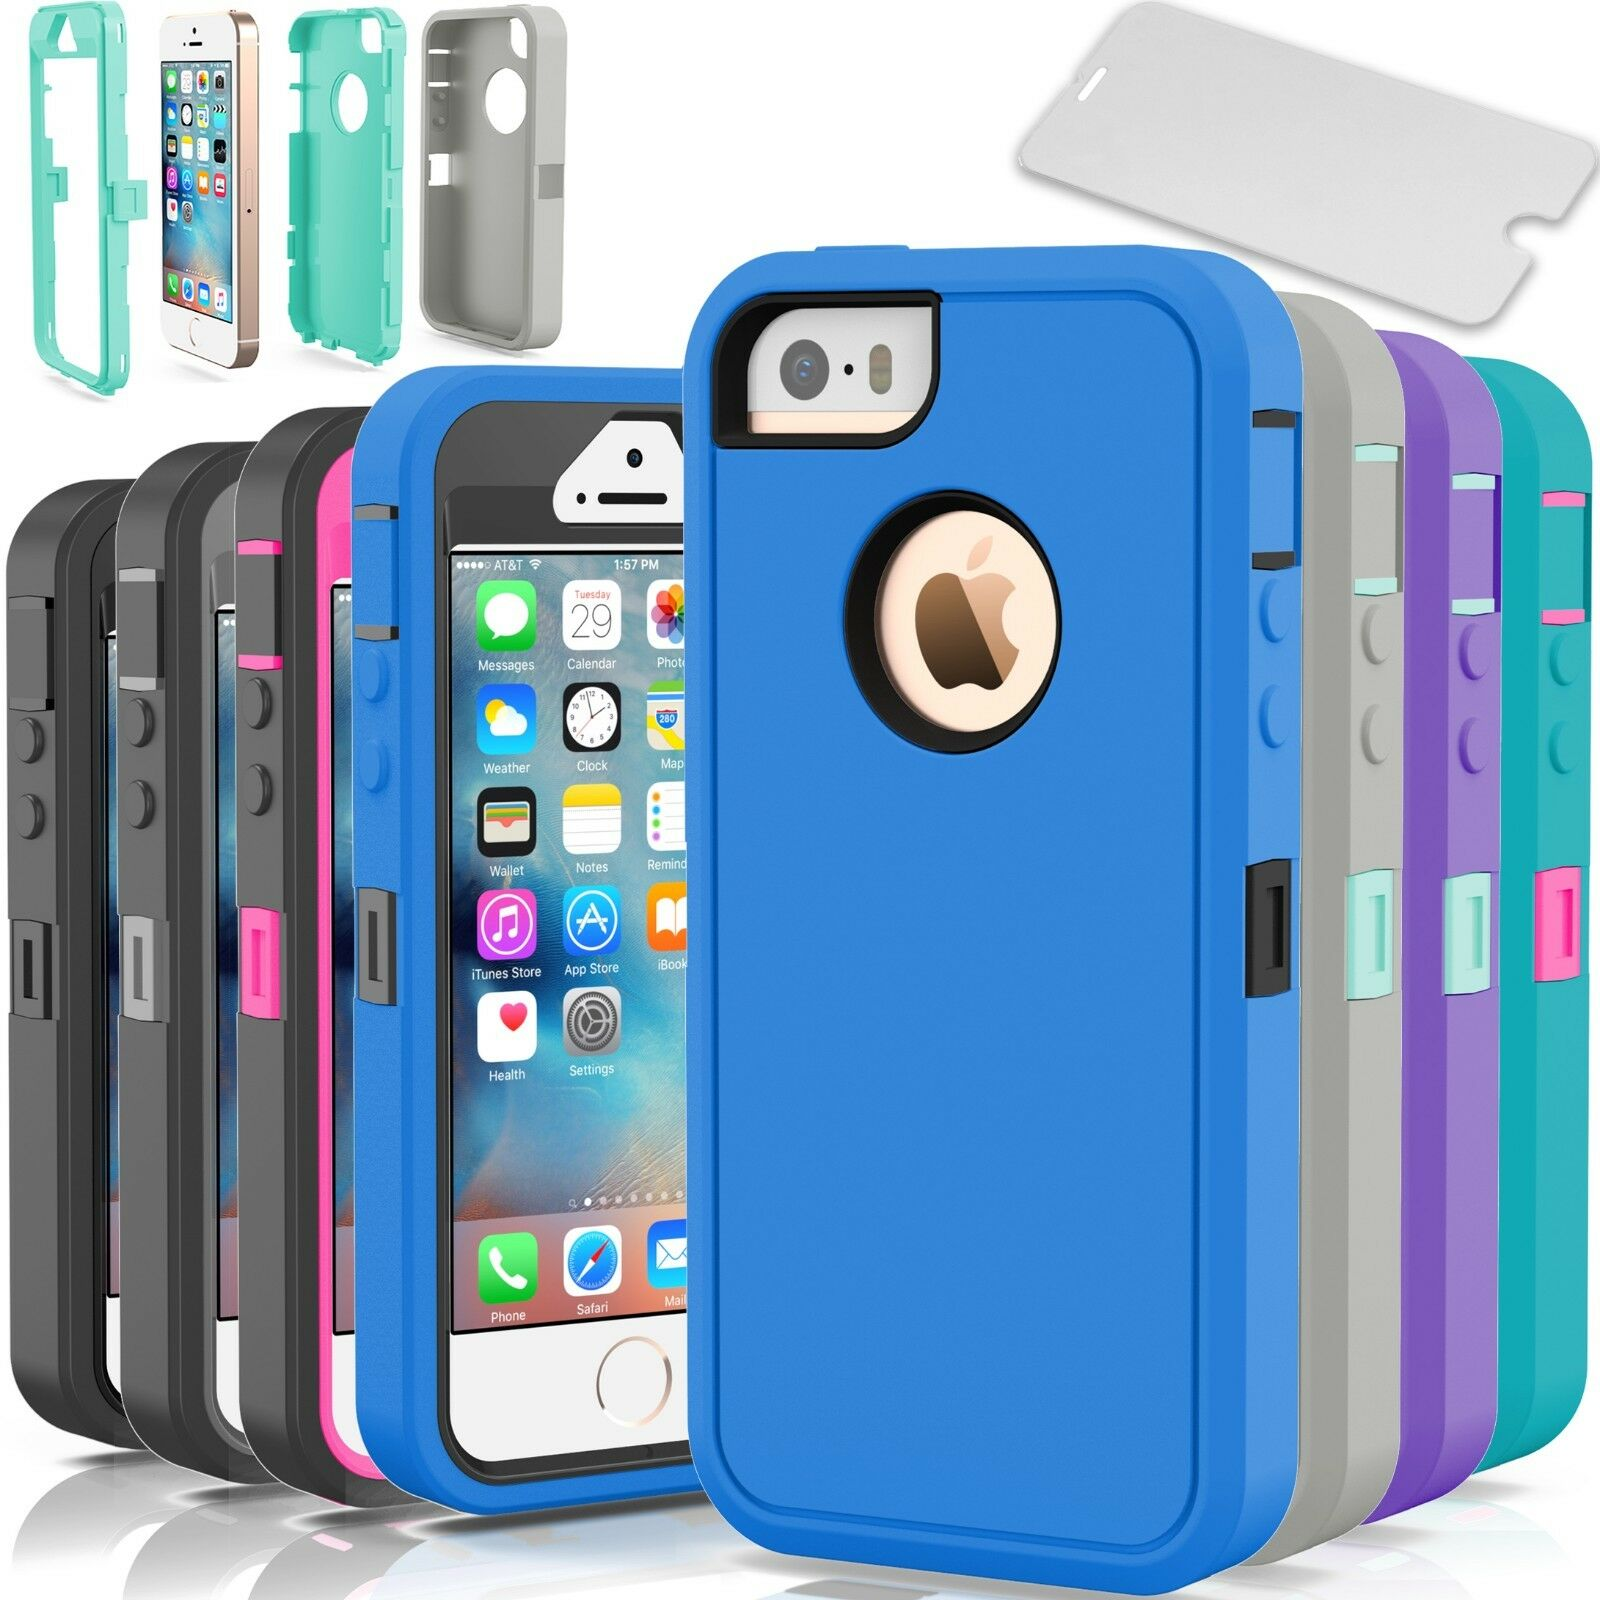 Shockproof Hybrid Rugged Skin Hard Armor Case Cover For Le Iphone 5c 5 5s Se 1 Of 12free Shipping